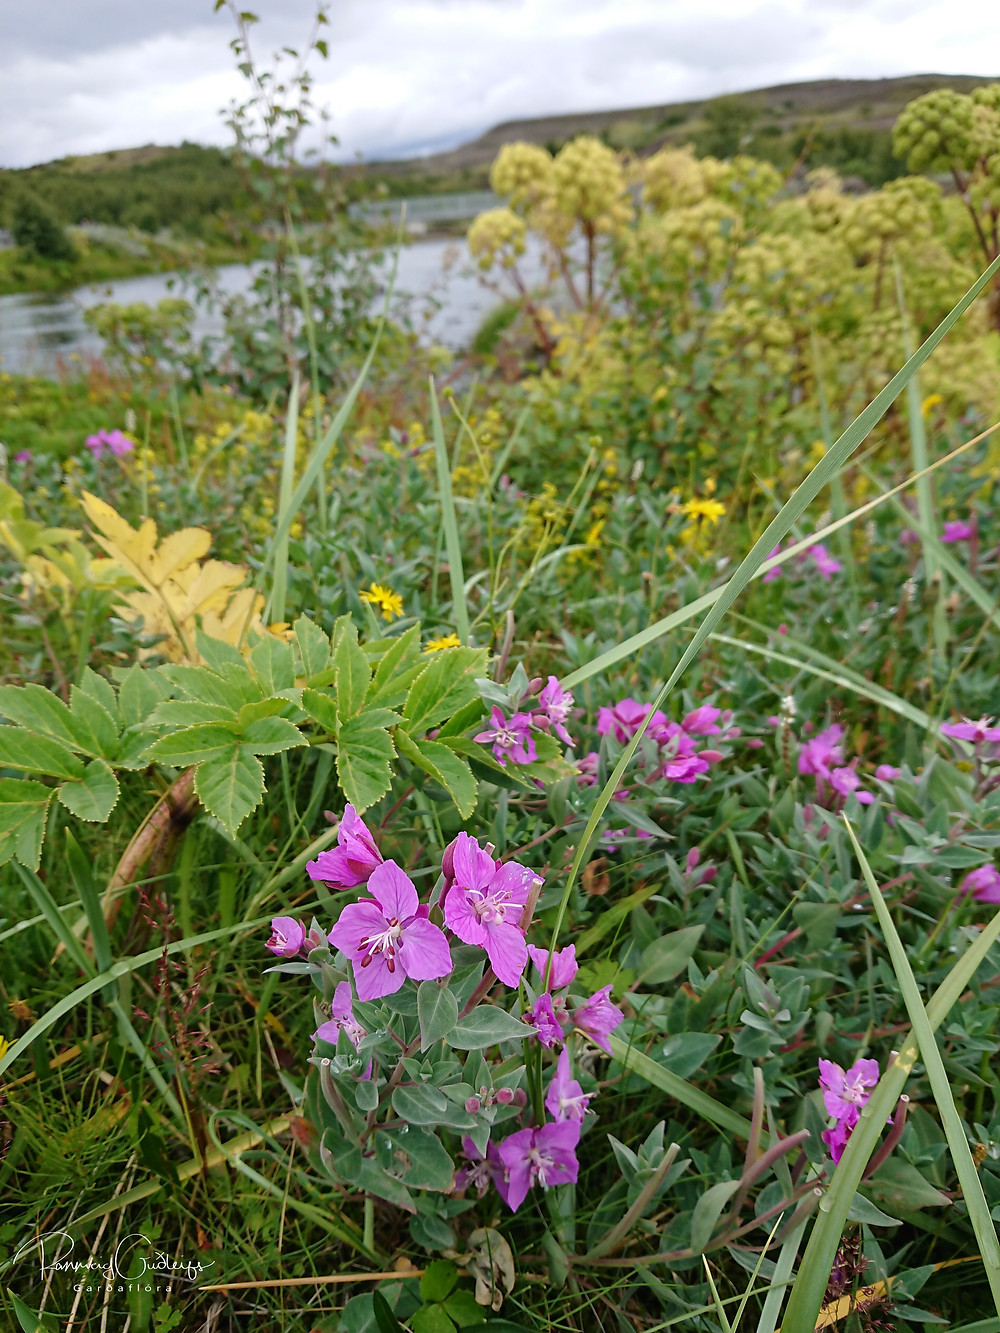 Chamaenerion latifolium, river beauty willowherb, dwarf fireweed, eyrarrós, Iceland flora